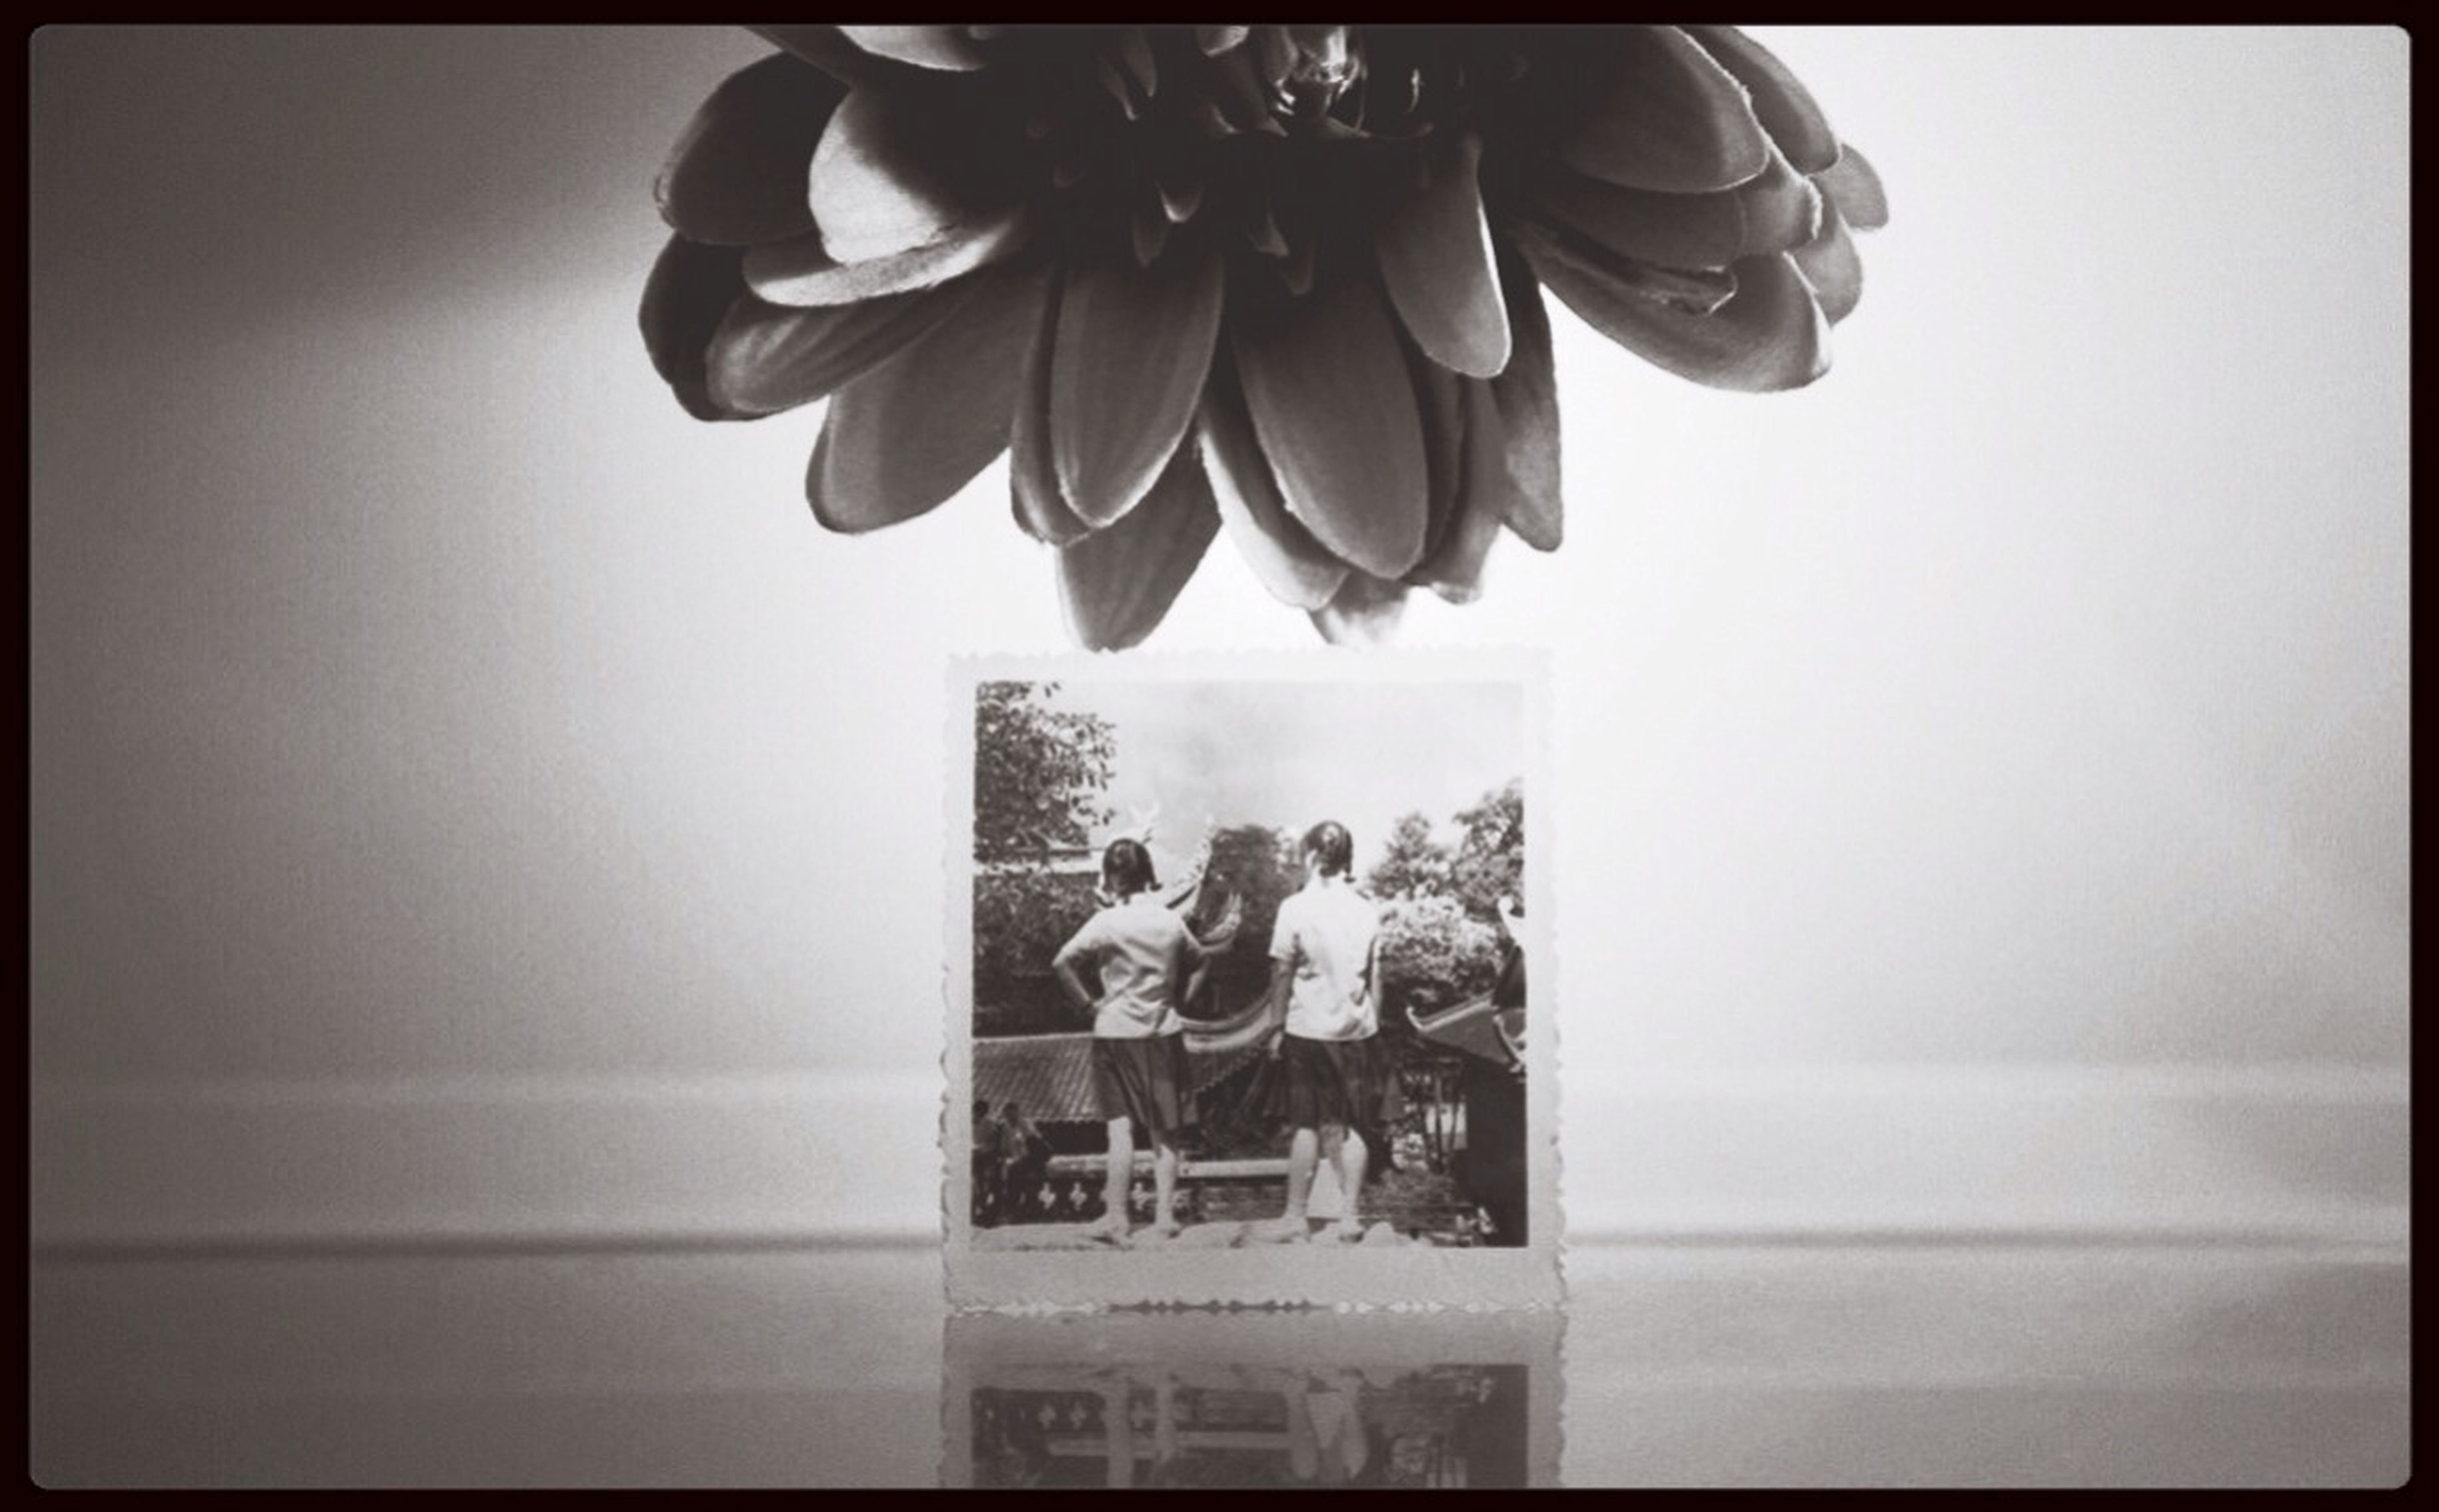 transfer print, indoors, auto post production filter, flower, lifestyles, person, freshness, leisure activity, standing, men, copy space, table, day, potted plant, love, casual clothing, water